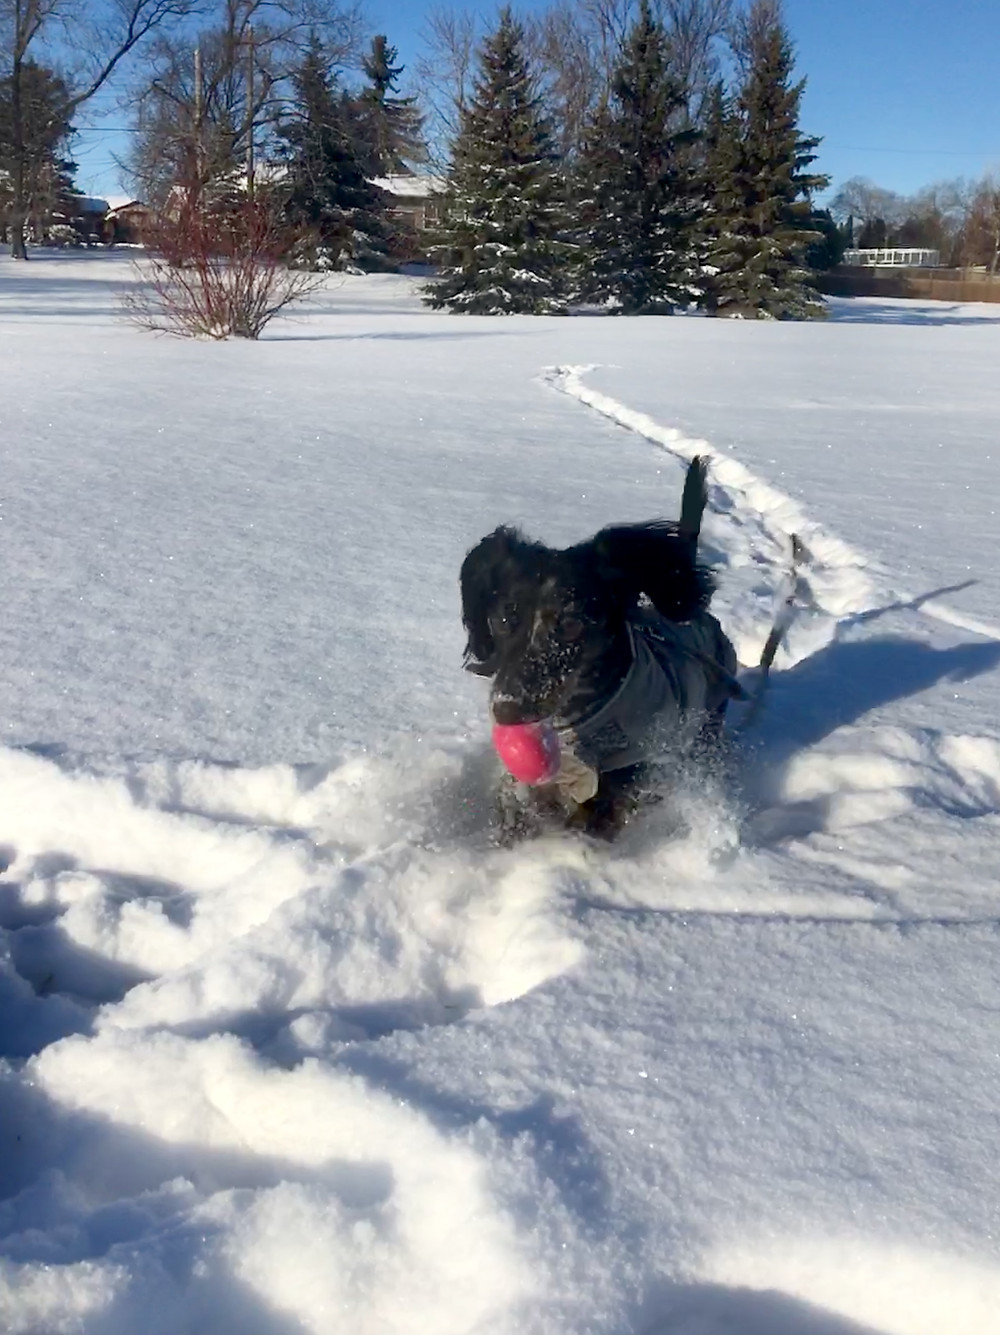 Black dachshund running through fresh snow with a pink ball in his mouth